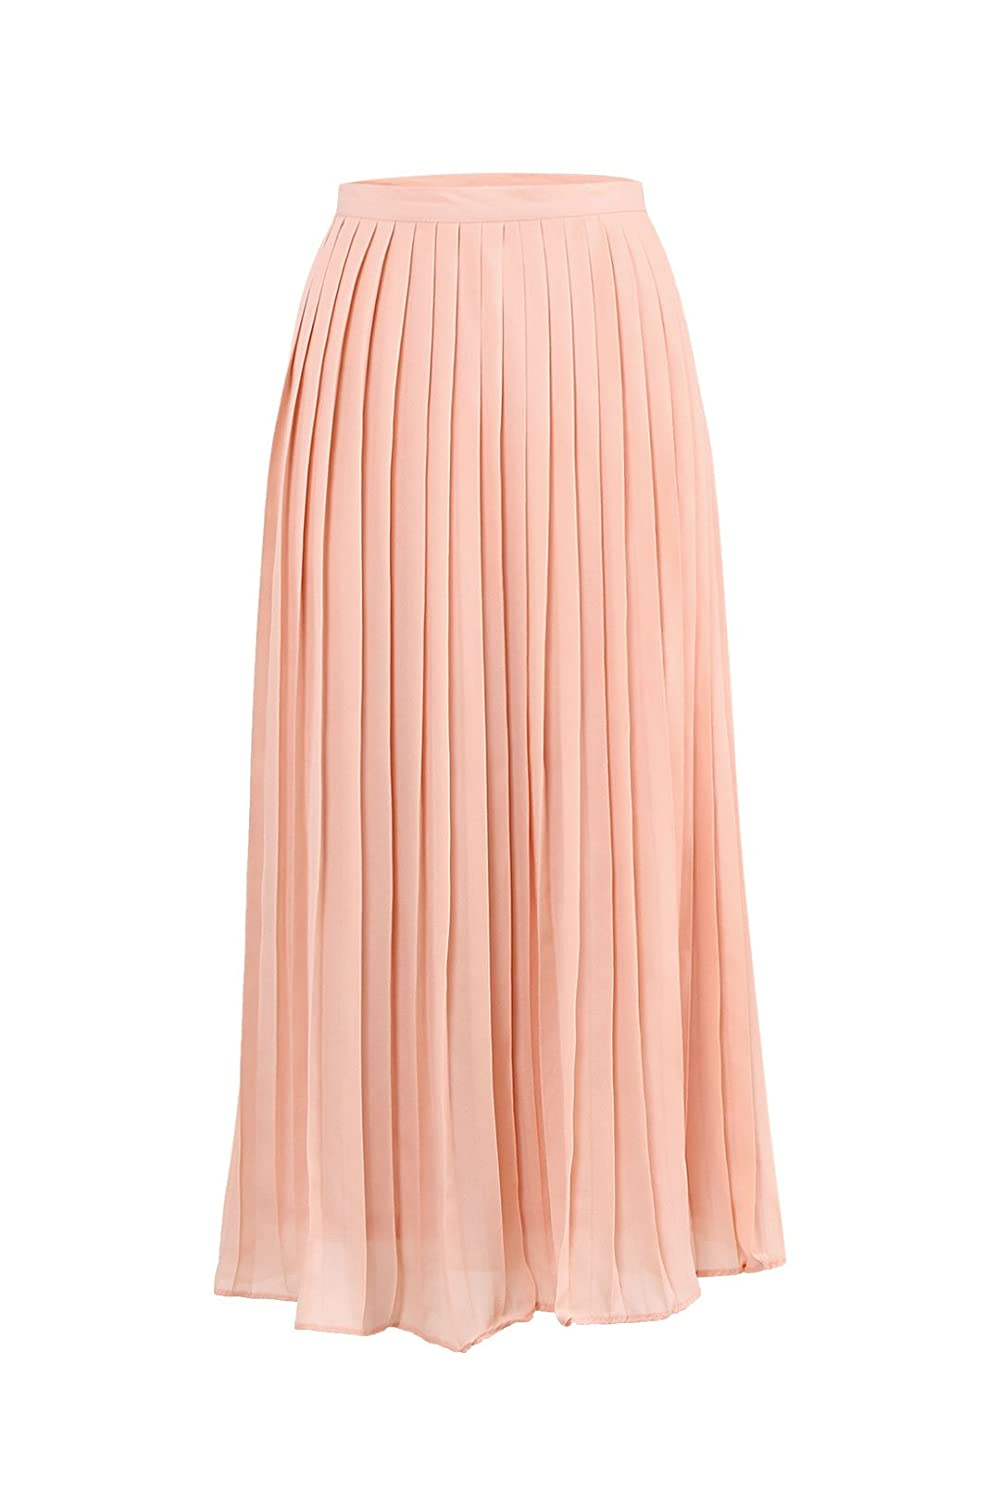 73bed5d80f4c8 YOINS Women Casual Plus Size Pleated Maxi Long Midi Skirt Pink UK 20:  Amazon.co.uk: Clothing